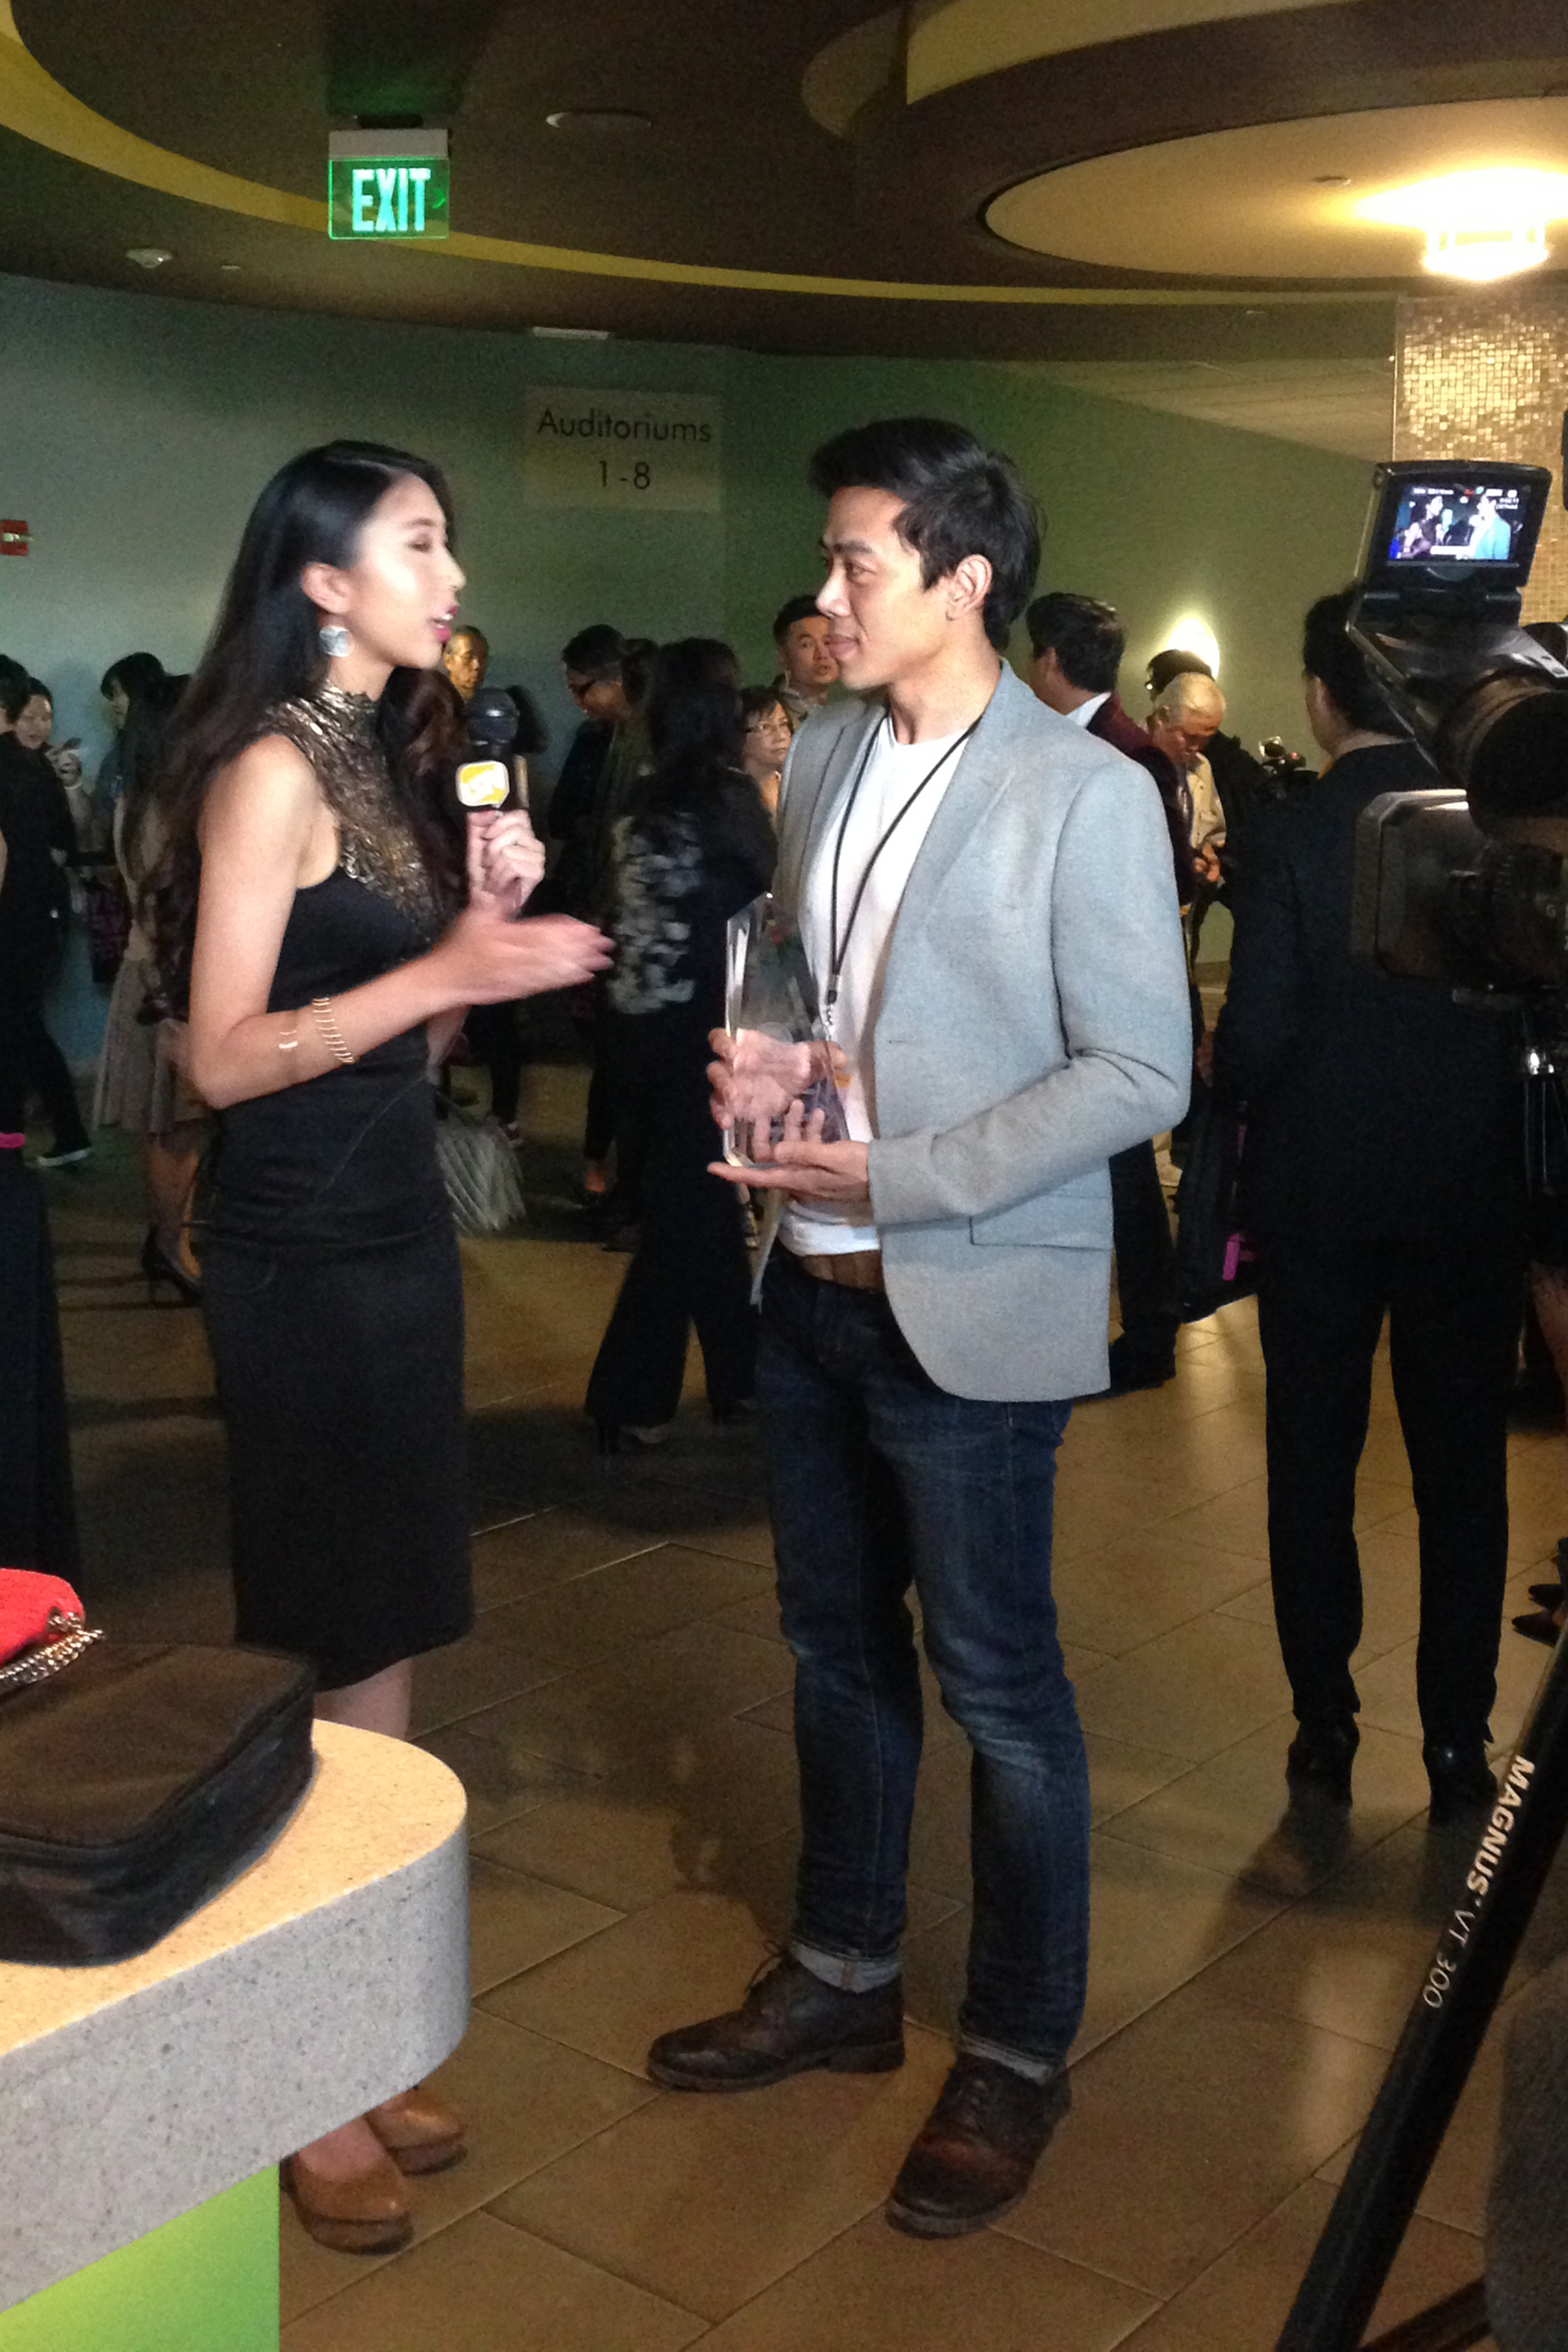 Director Leon Le being interviewed after received the Best Short Film Award at the Viet Film Fest 2015.